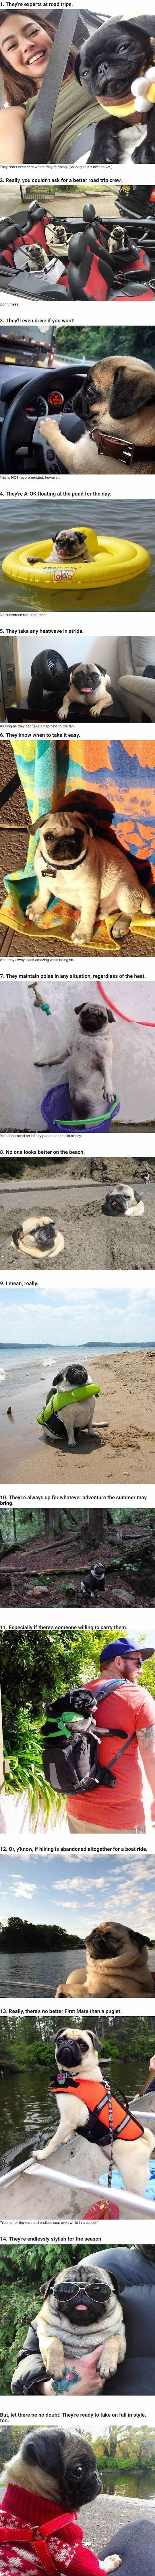 14 Reasons Pugs Are The Ultimate Experts In Summer Living